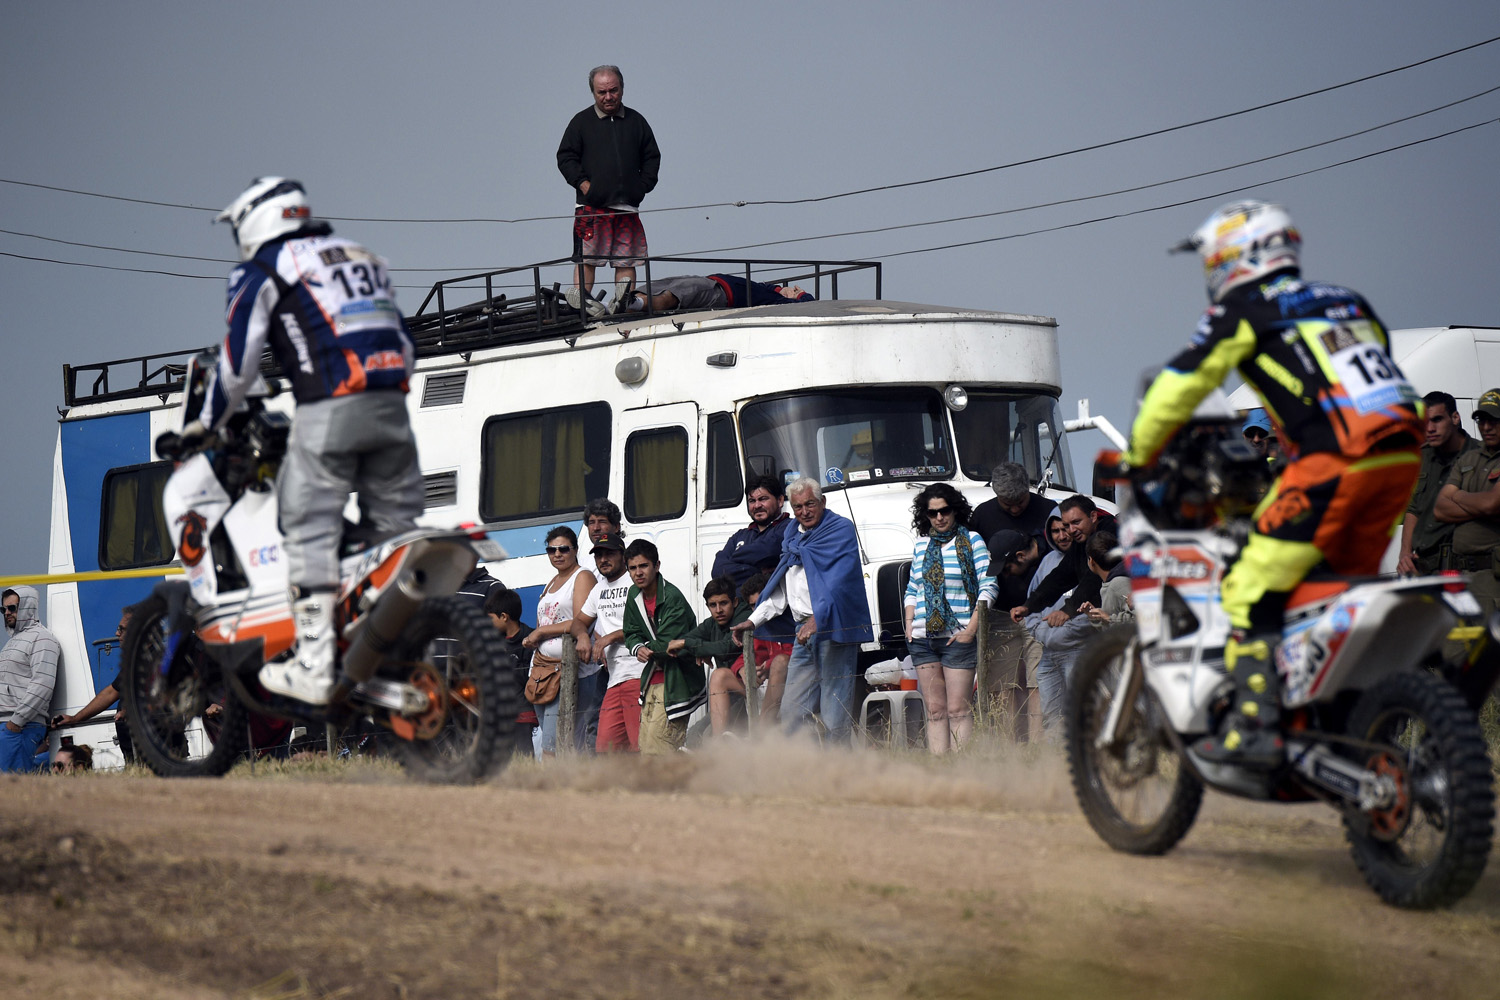 The Dakar Rally, being held in Argentina, Chile and Bolivia, starts and ends in Buenos Aires after 13 stages and nearly 6,000 miles. Cars, trucks, quads and motorbikes are permitted in the race, offering a unique style of competition that hinges more on endurance and preparation than anything else.